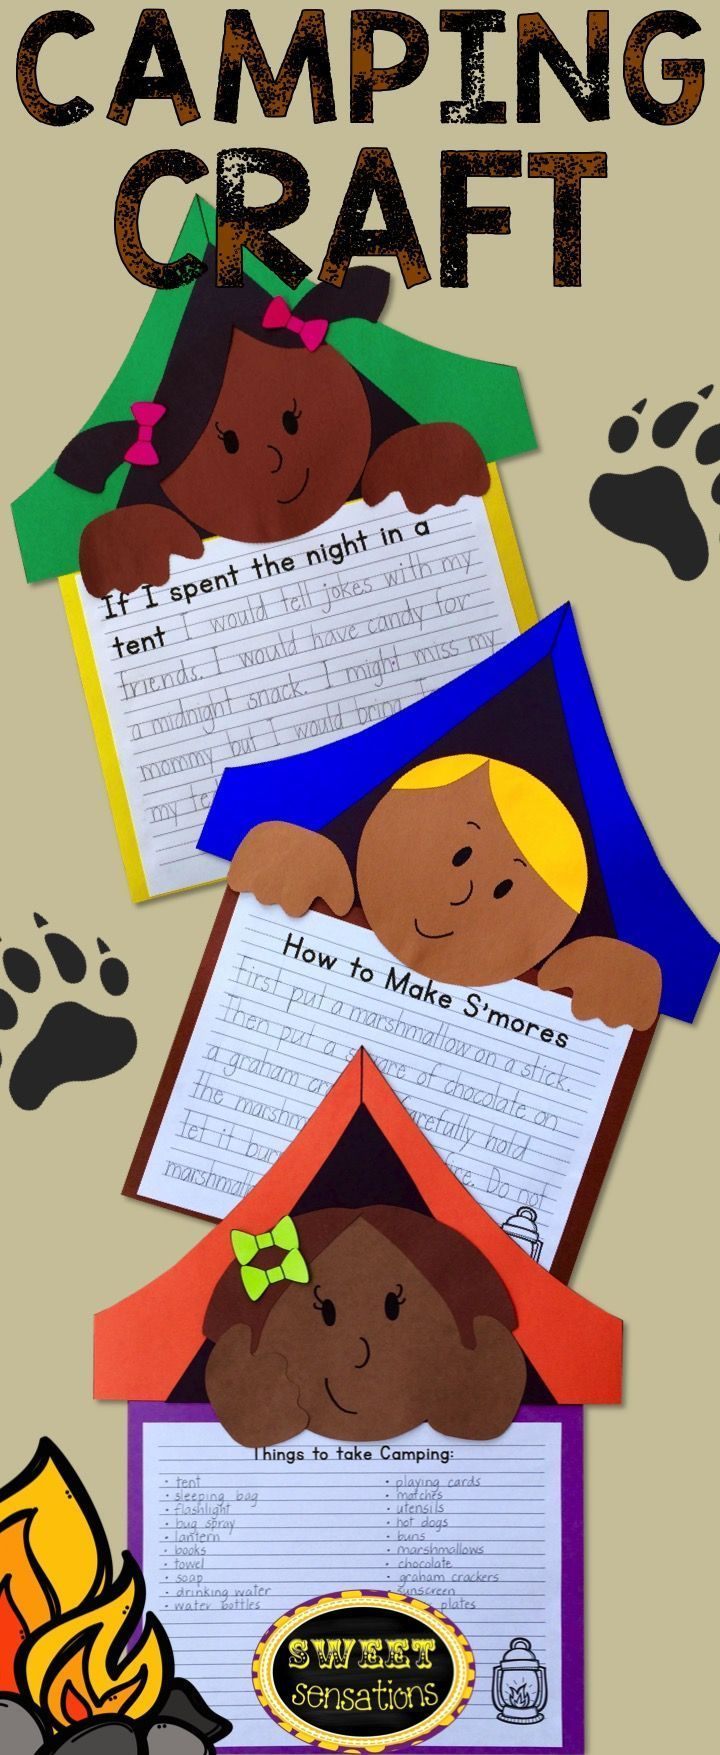 Camping craft activity for Summer camp arts and crafts projects